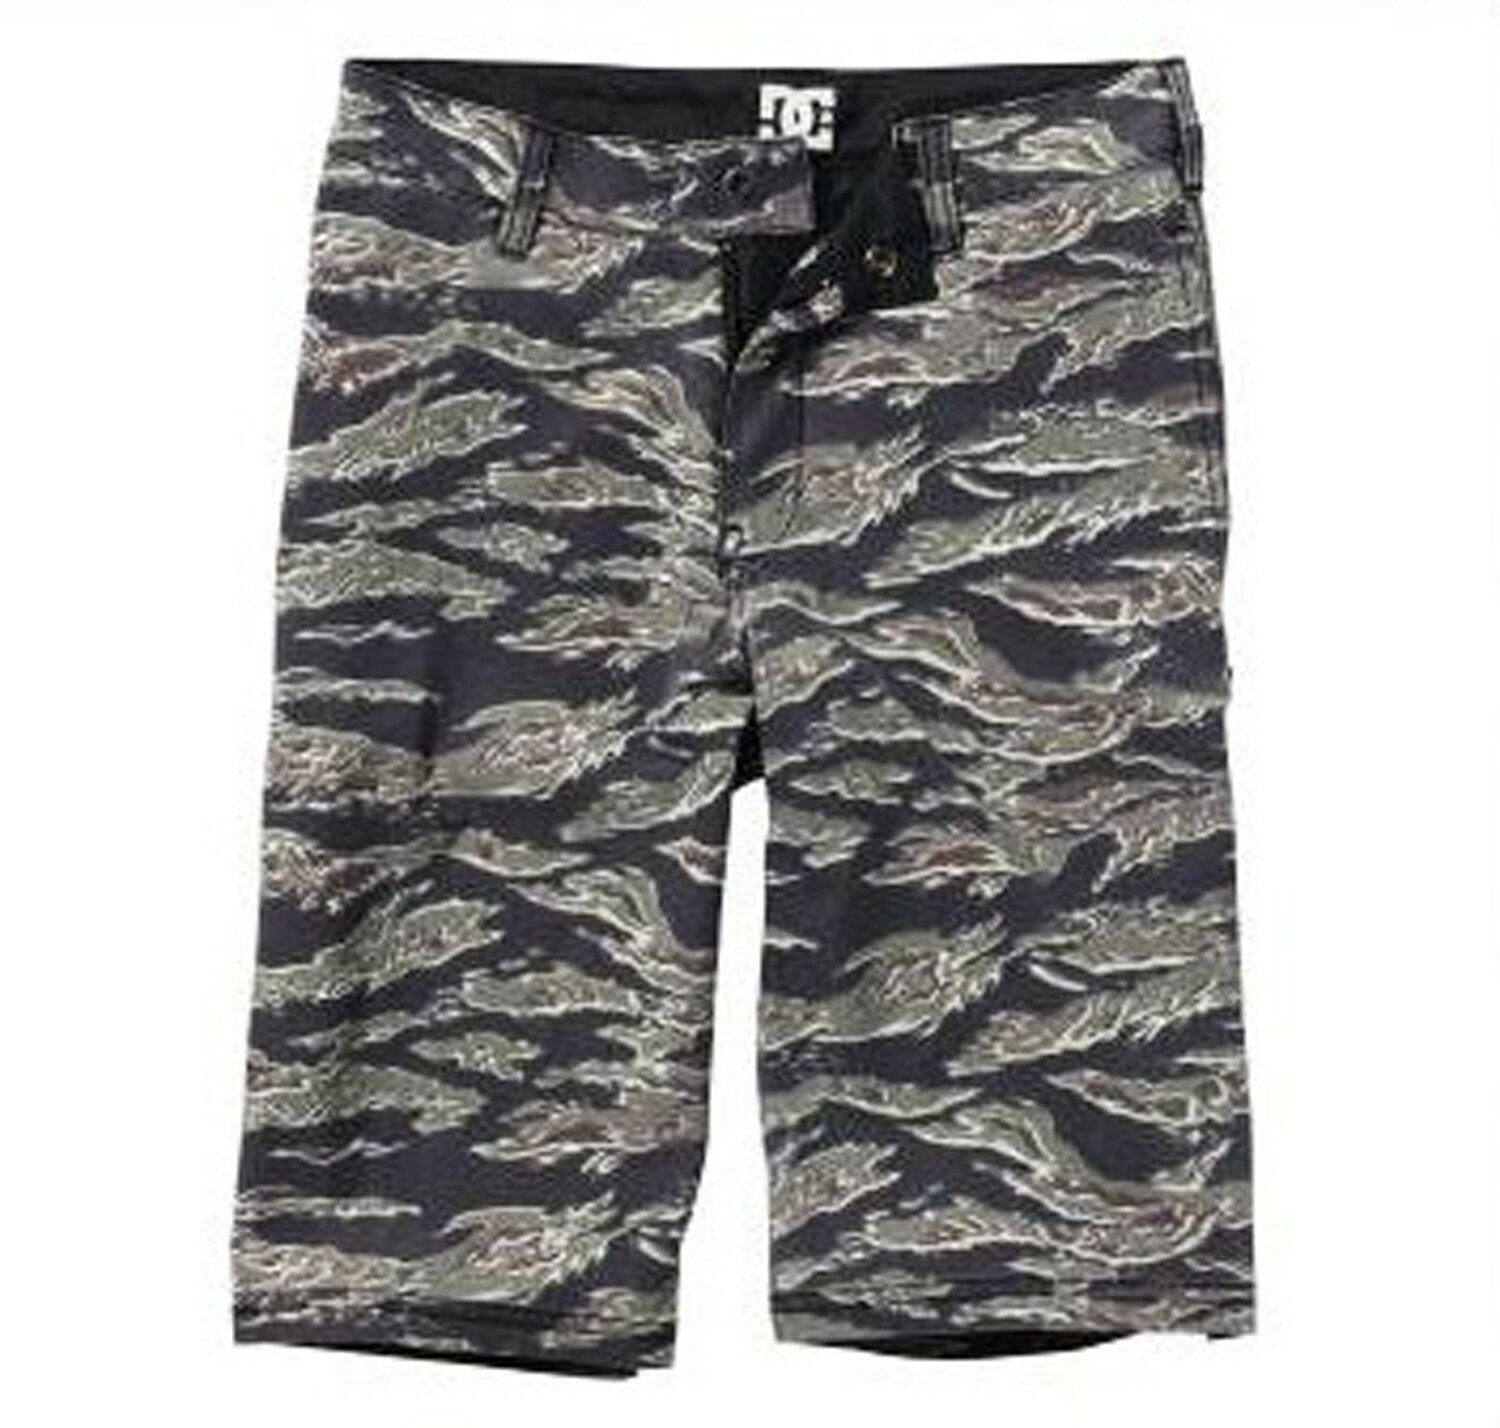 NEW DC SHOES MENS GUY BOARDSHORTS SWIM SUIT SHORTS BERMUDA WALKSHORTS PANTS